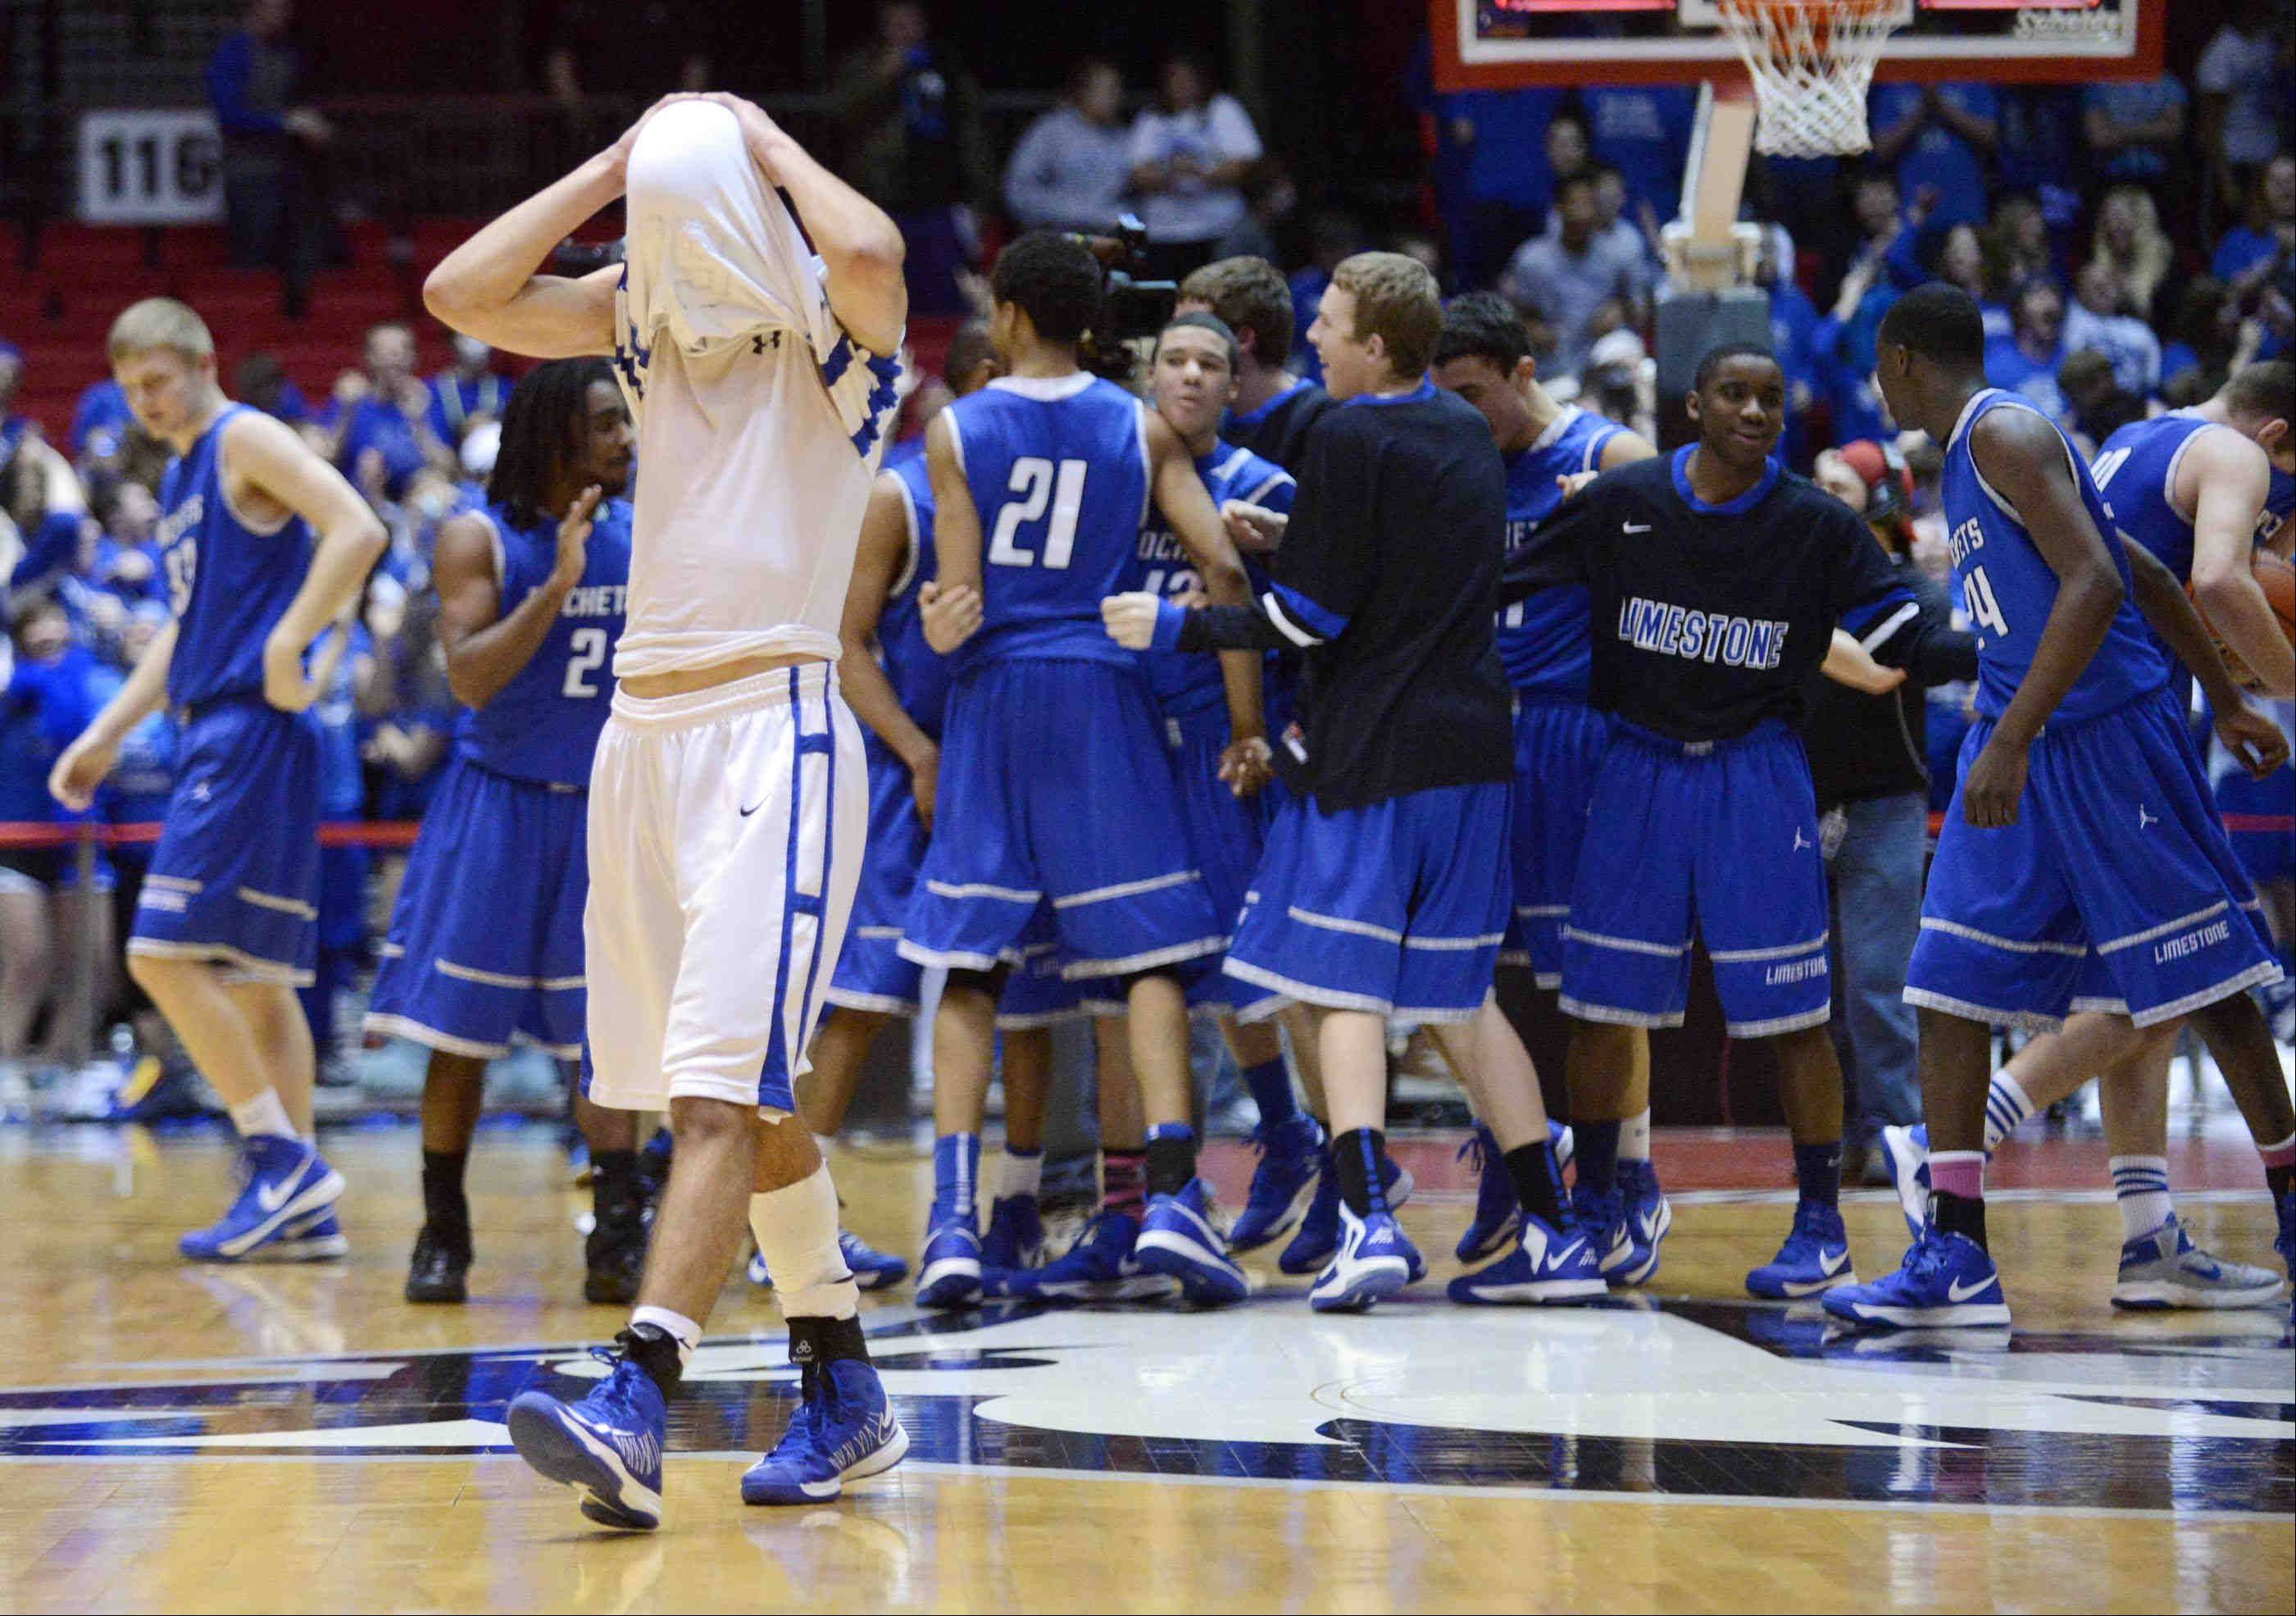 St. Francis' Tim Zettinger reacts as Bartonville Limestone players celebrate.